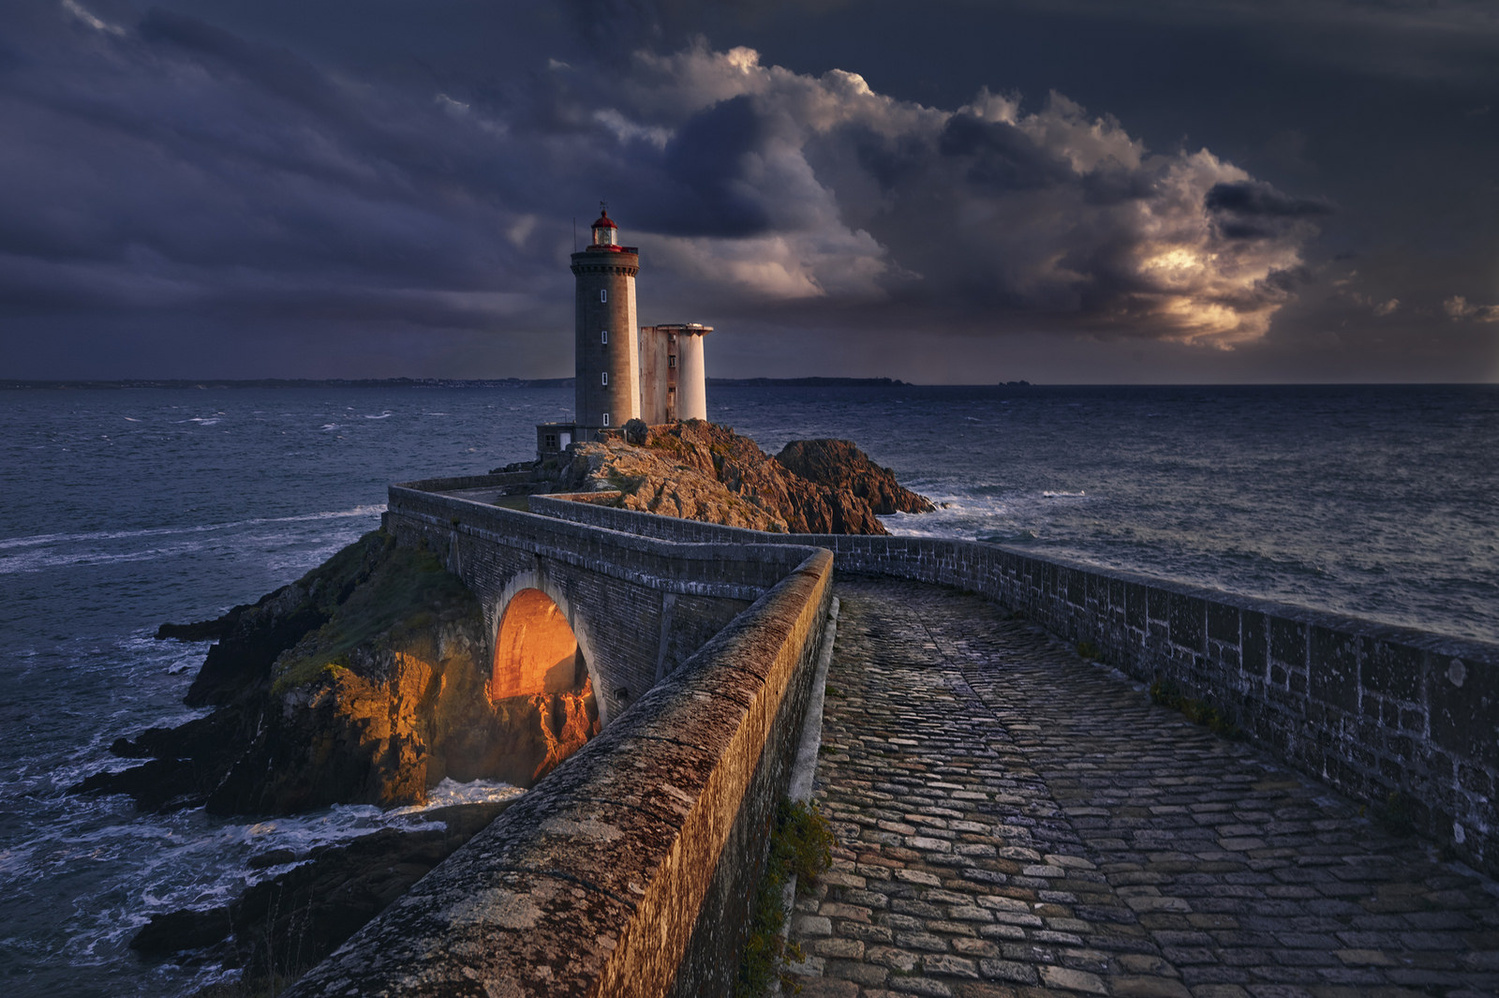 Last Light by denis lomme